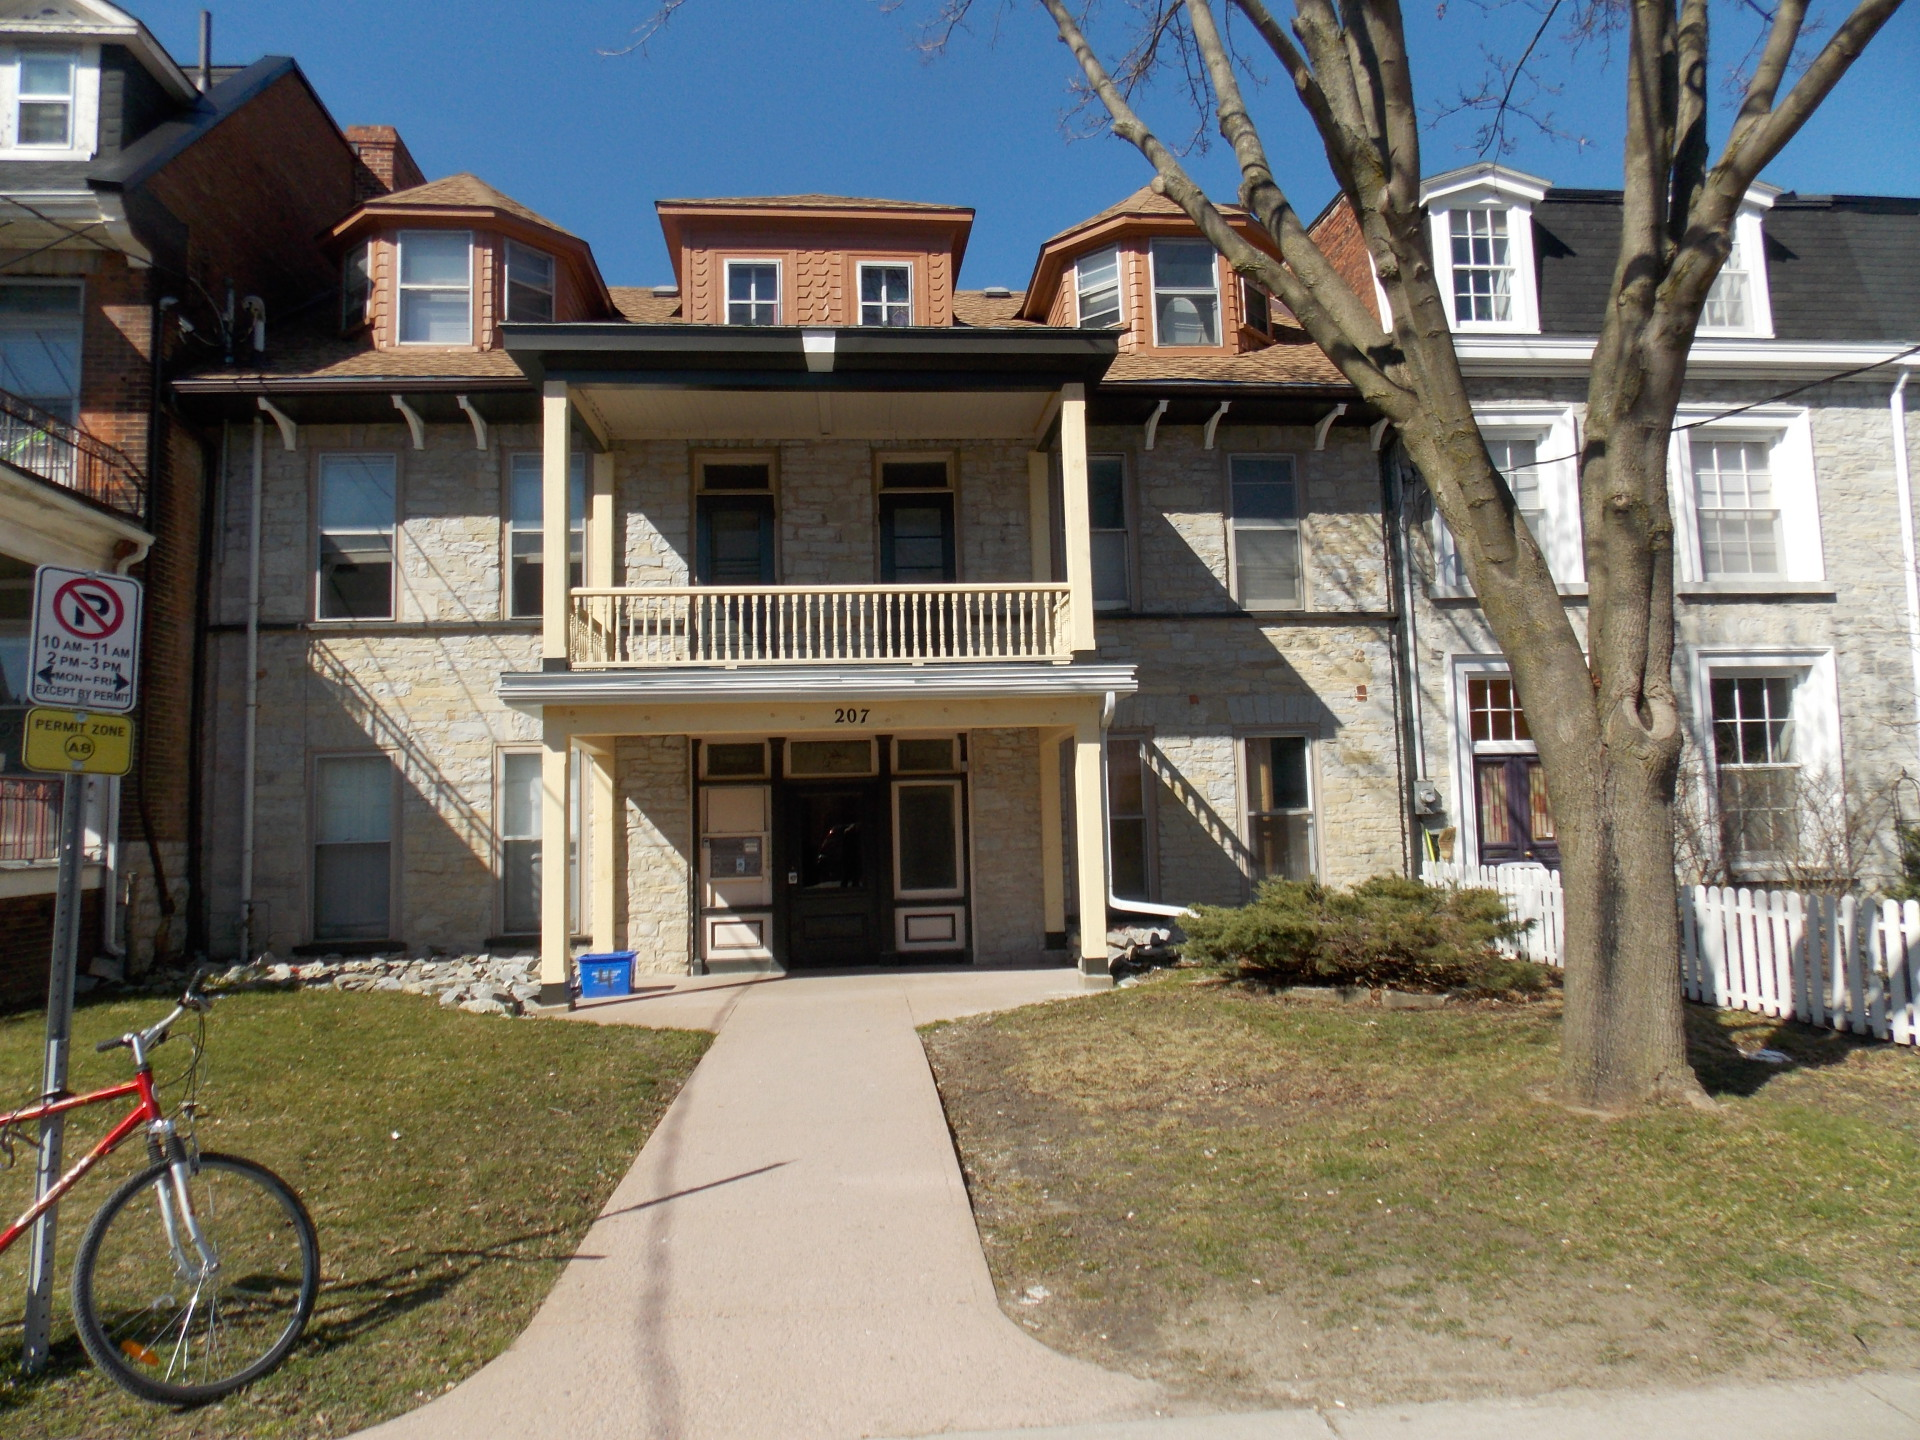 207 William st, Kingston, 1 bed Downtown executive  $1875